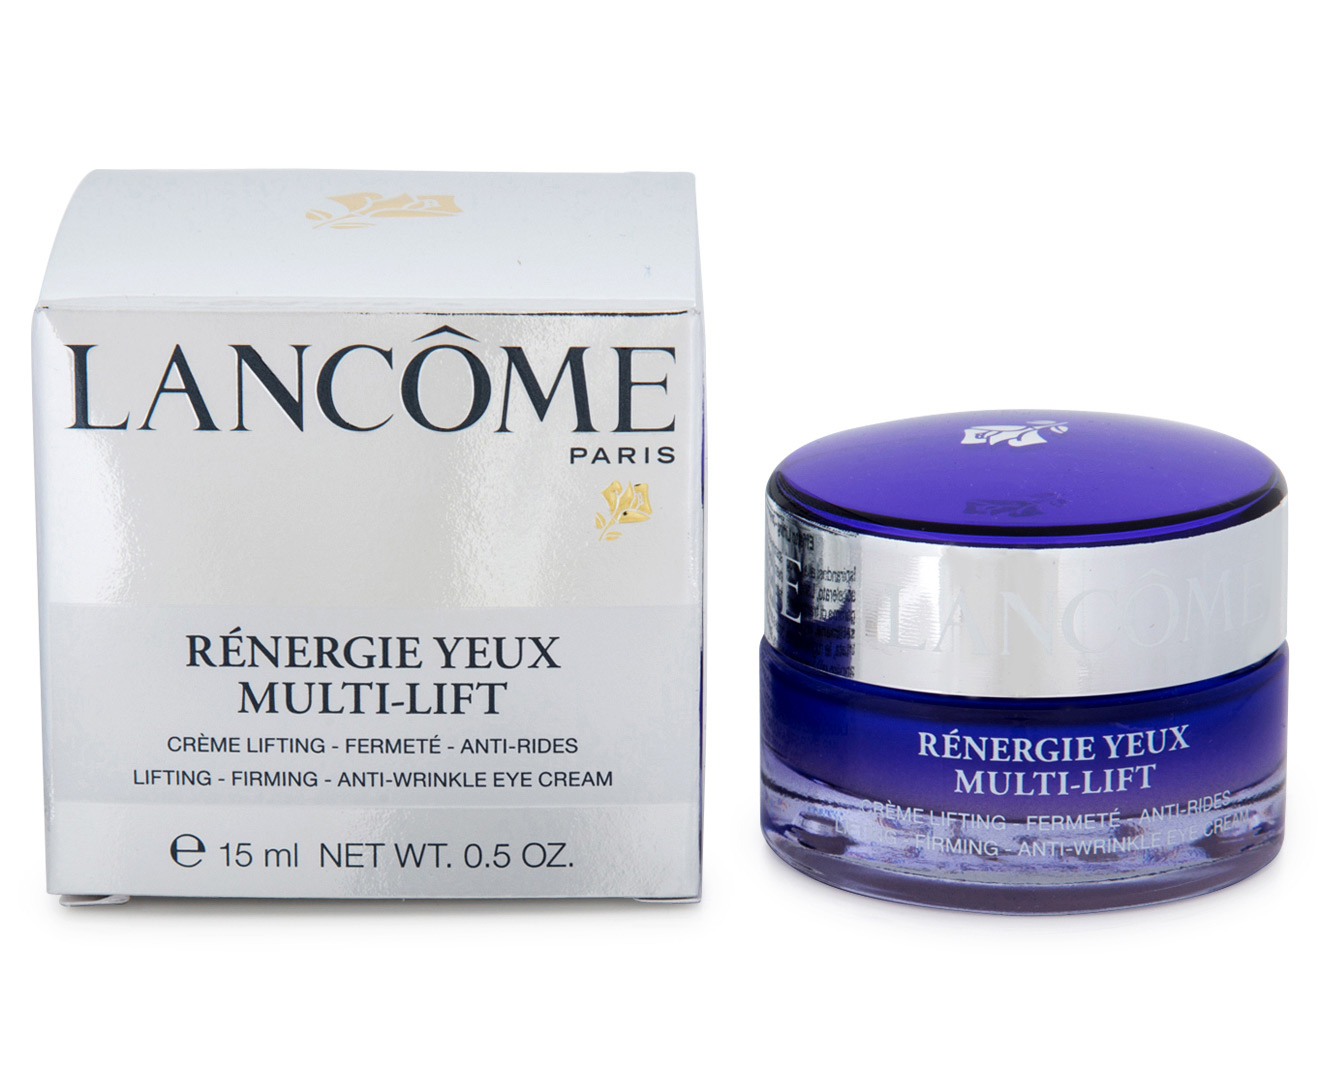 renergie yeux multi lift lancome